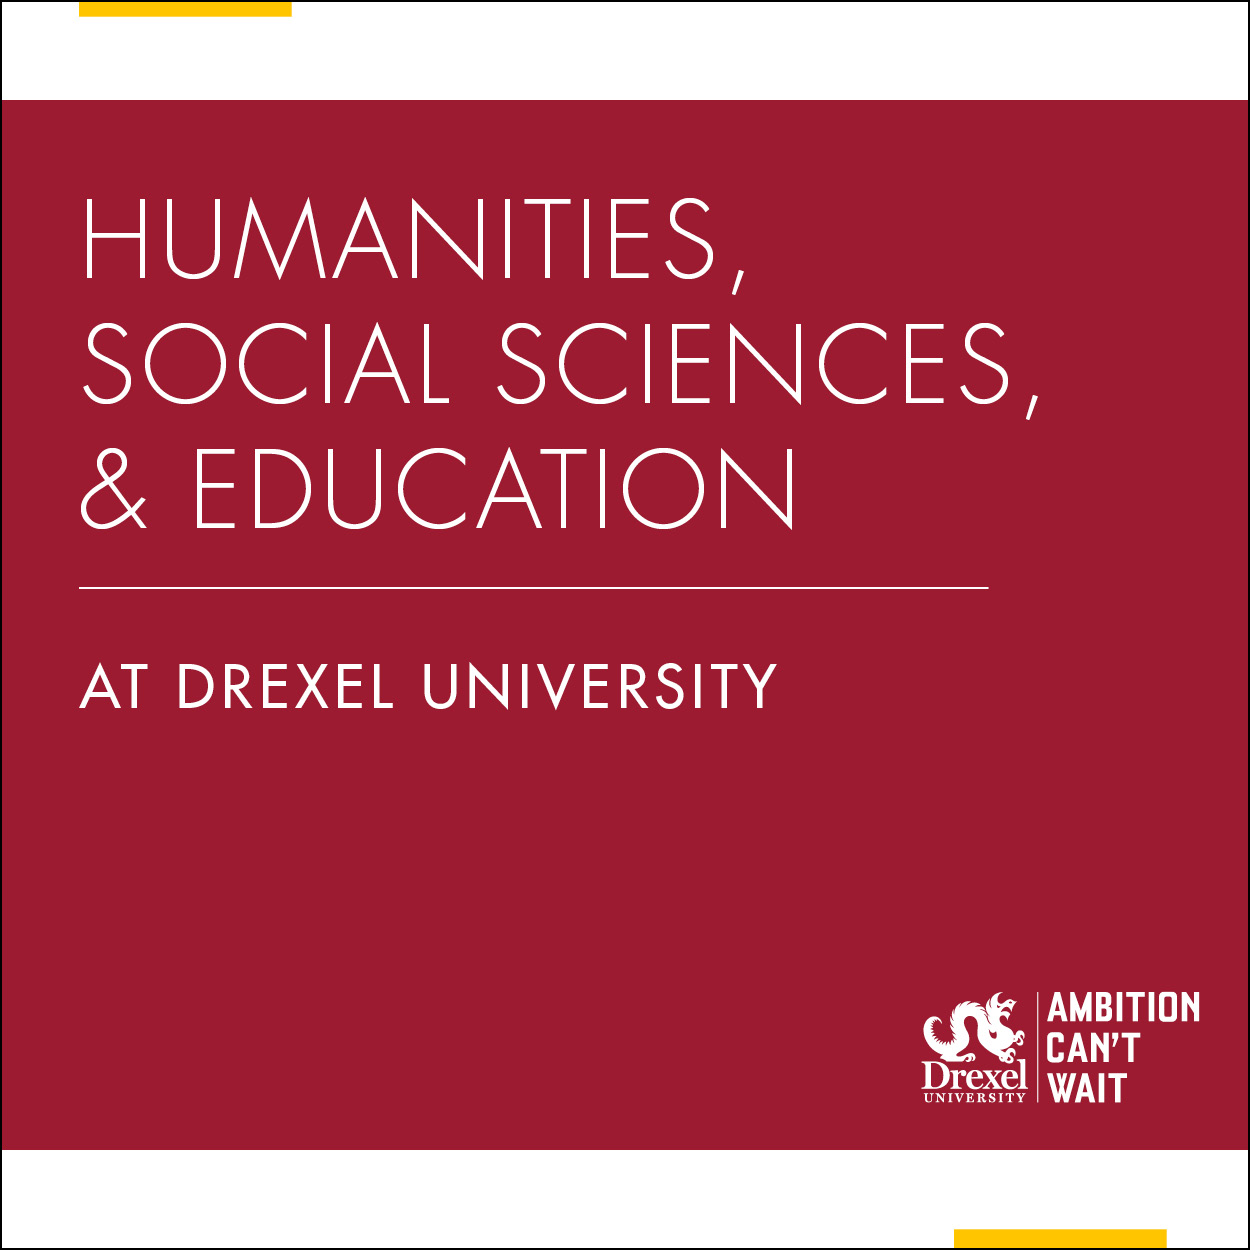 Humanities, Social Sciences, and Education at Drexel University